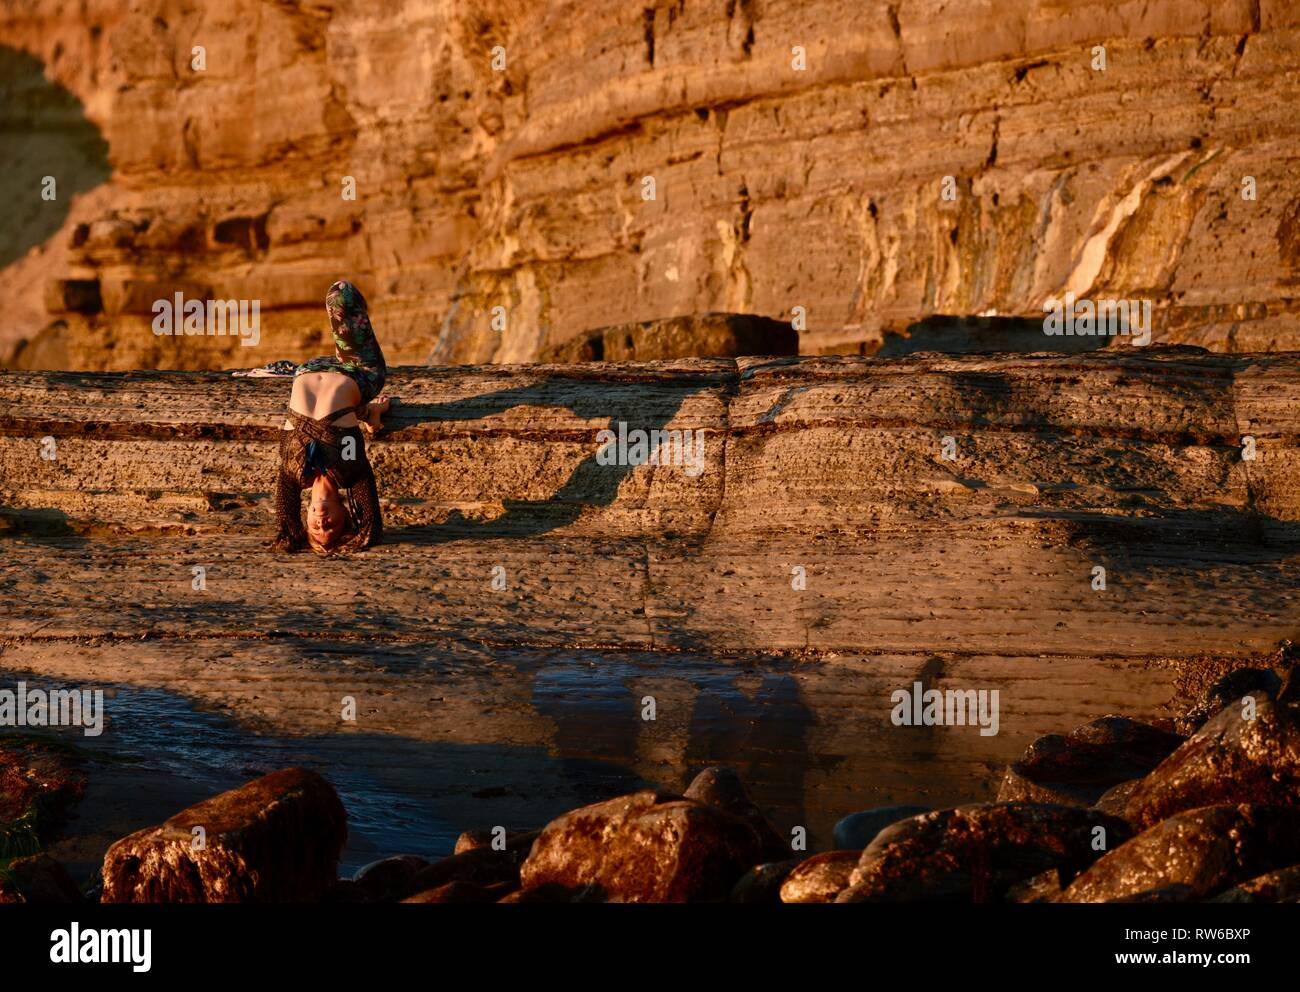 Beautiful young woman upside down in yoga pose throwing shadow on rugged cliffs at Sunset Cliffs Natural Park, Point Loma, San Diego, California, USA Stock Photo